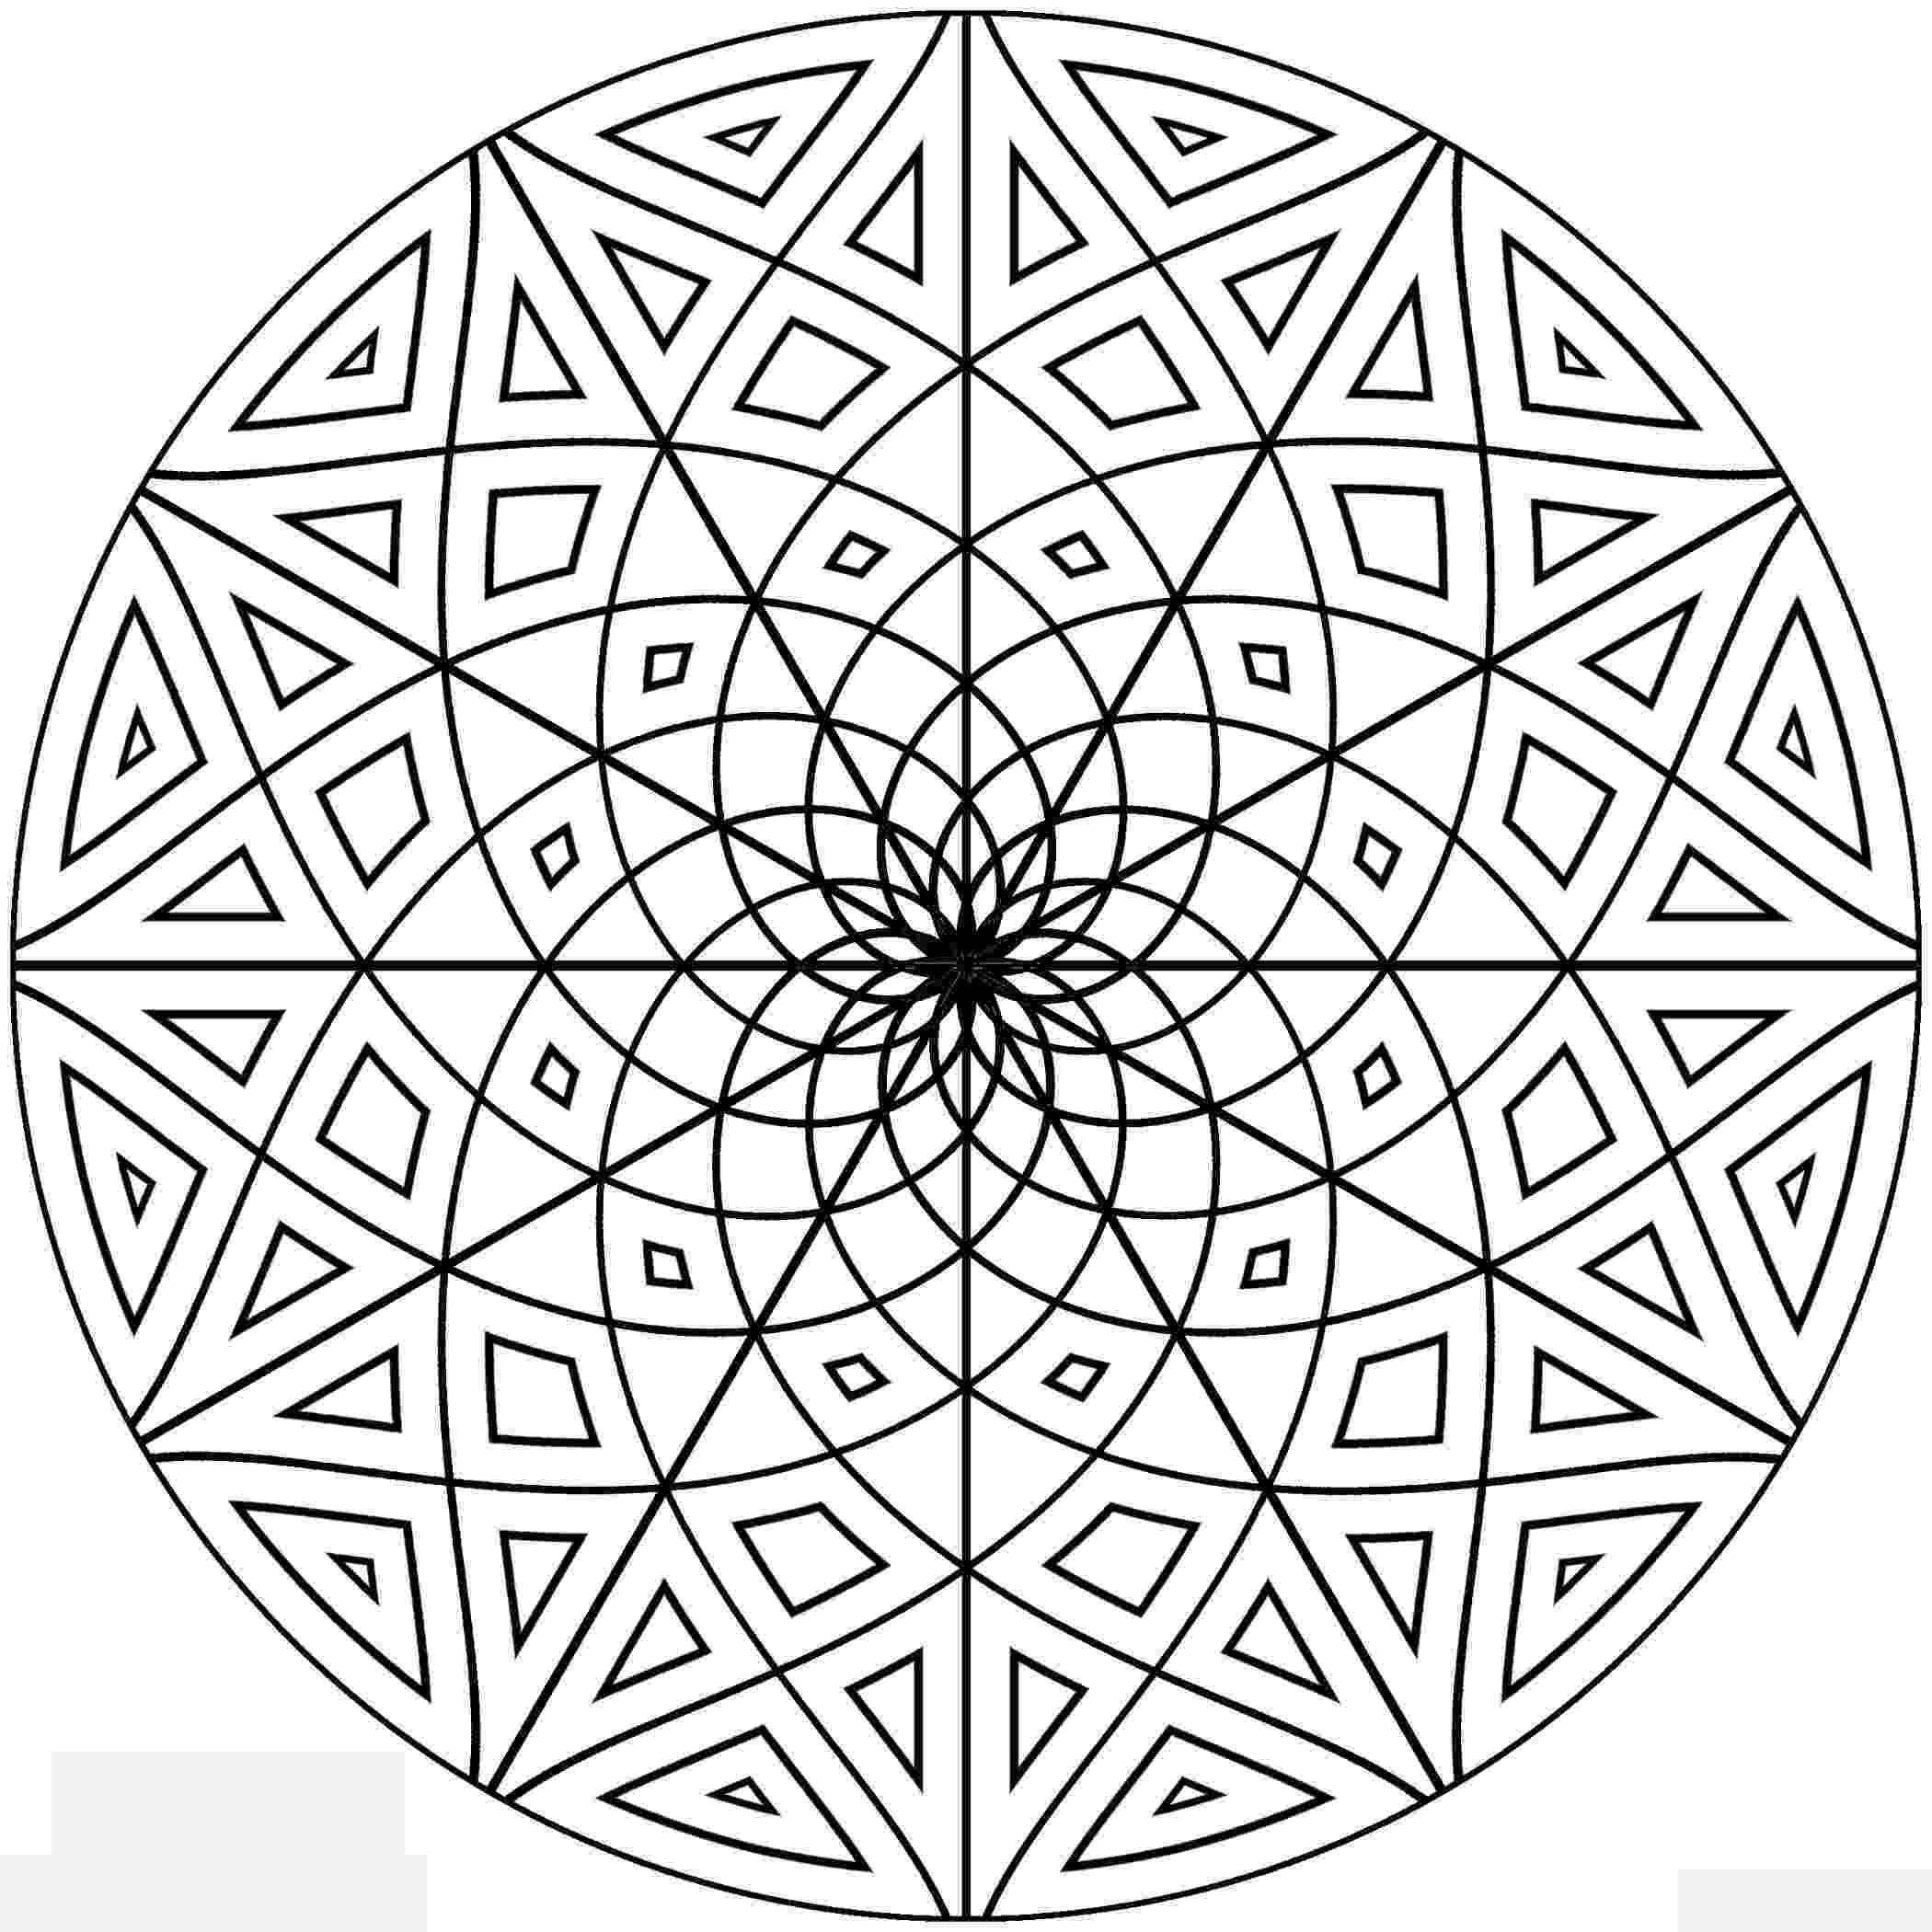 coloring pages for adults patterns free printable abstract coloring pages for adults coloring patterns pages for adults